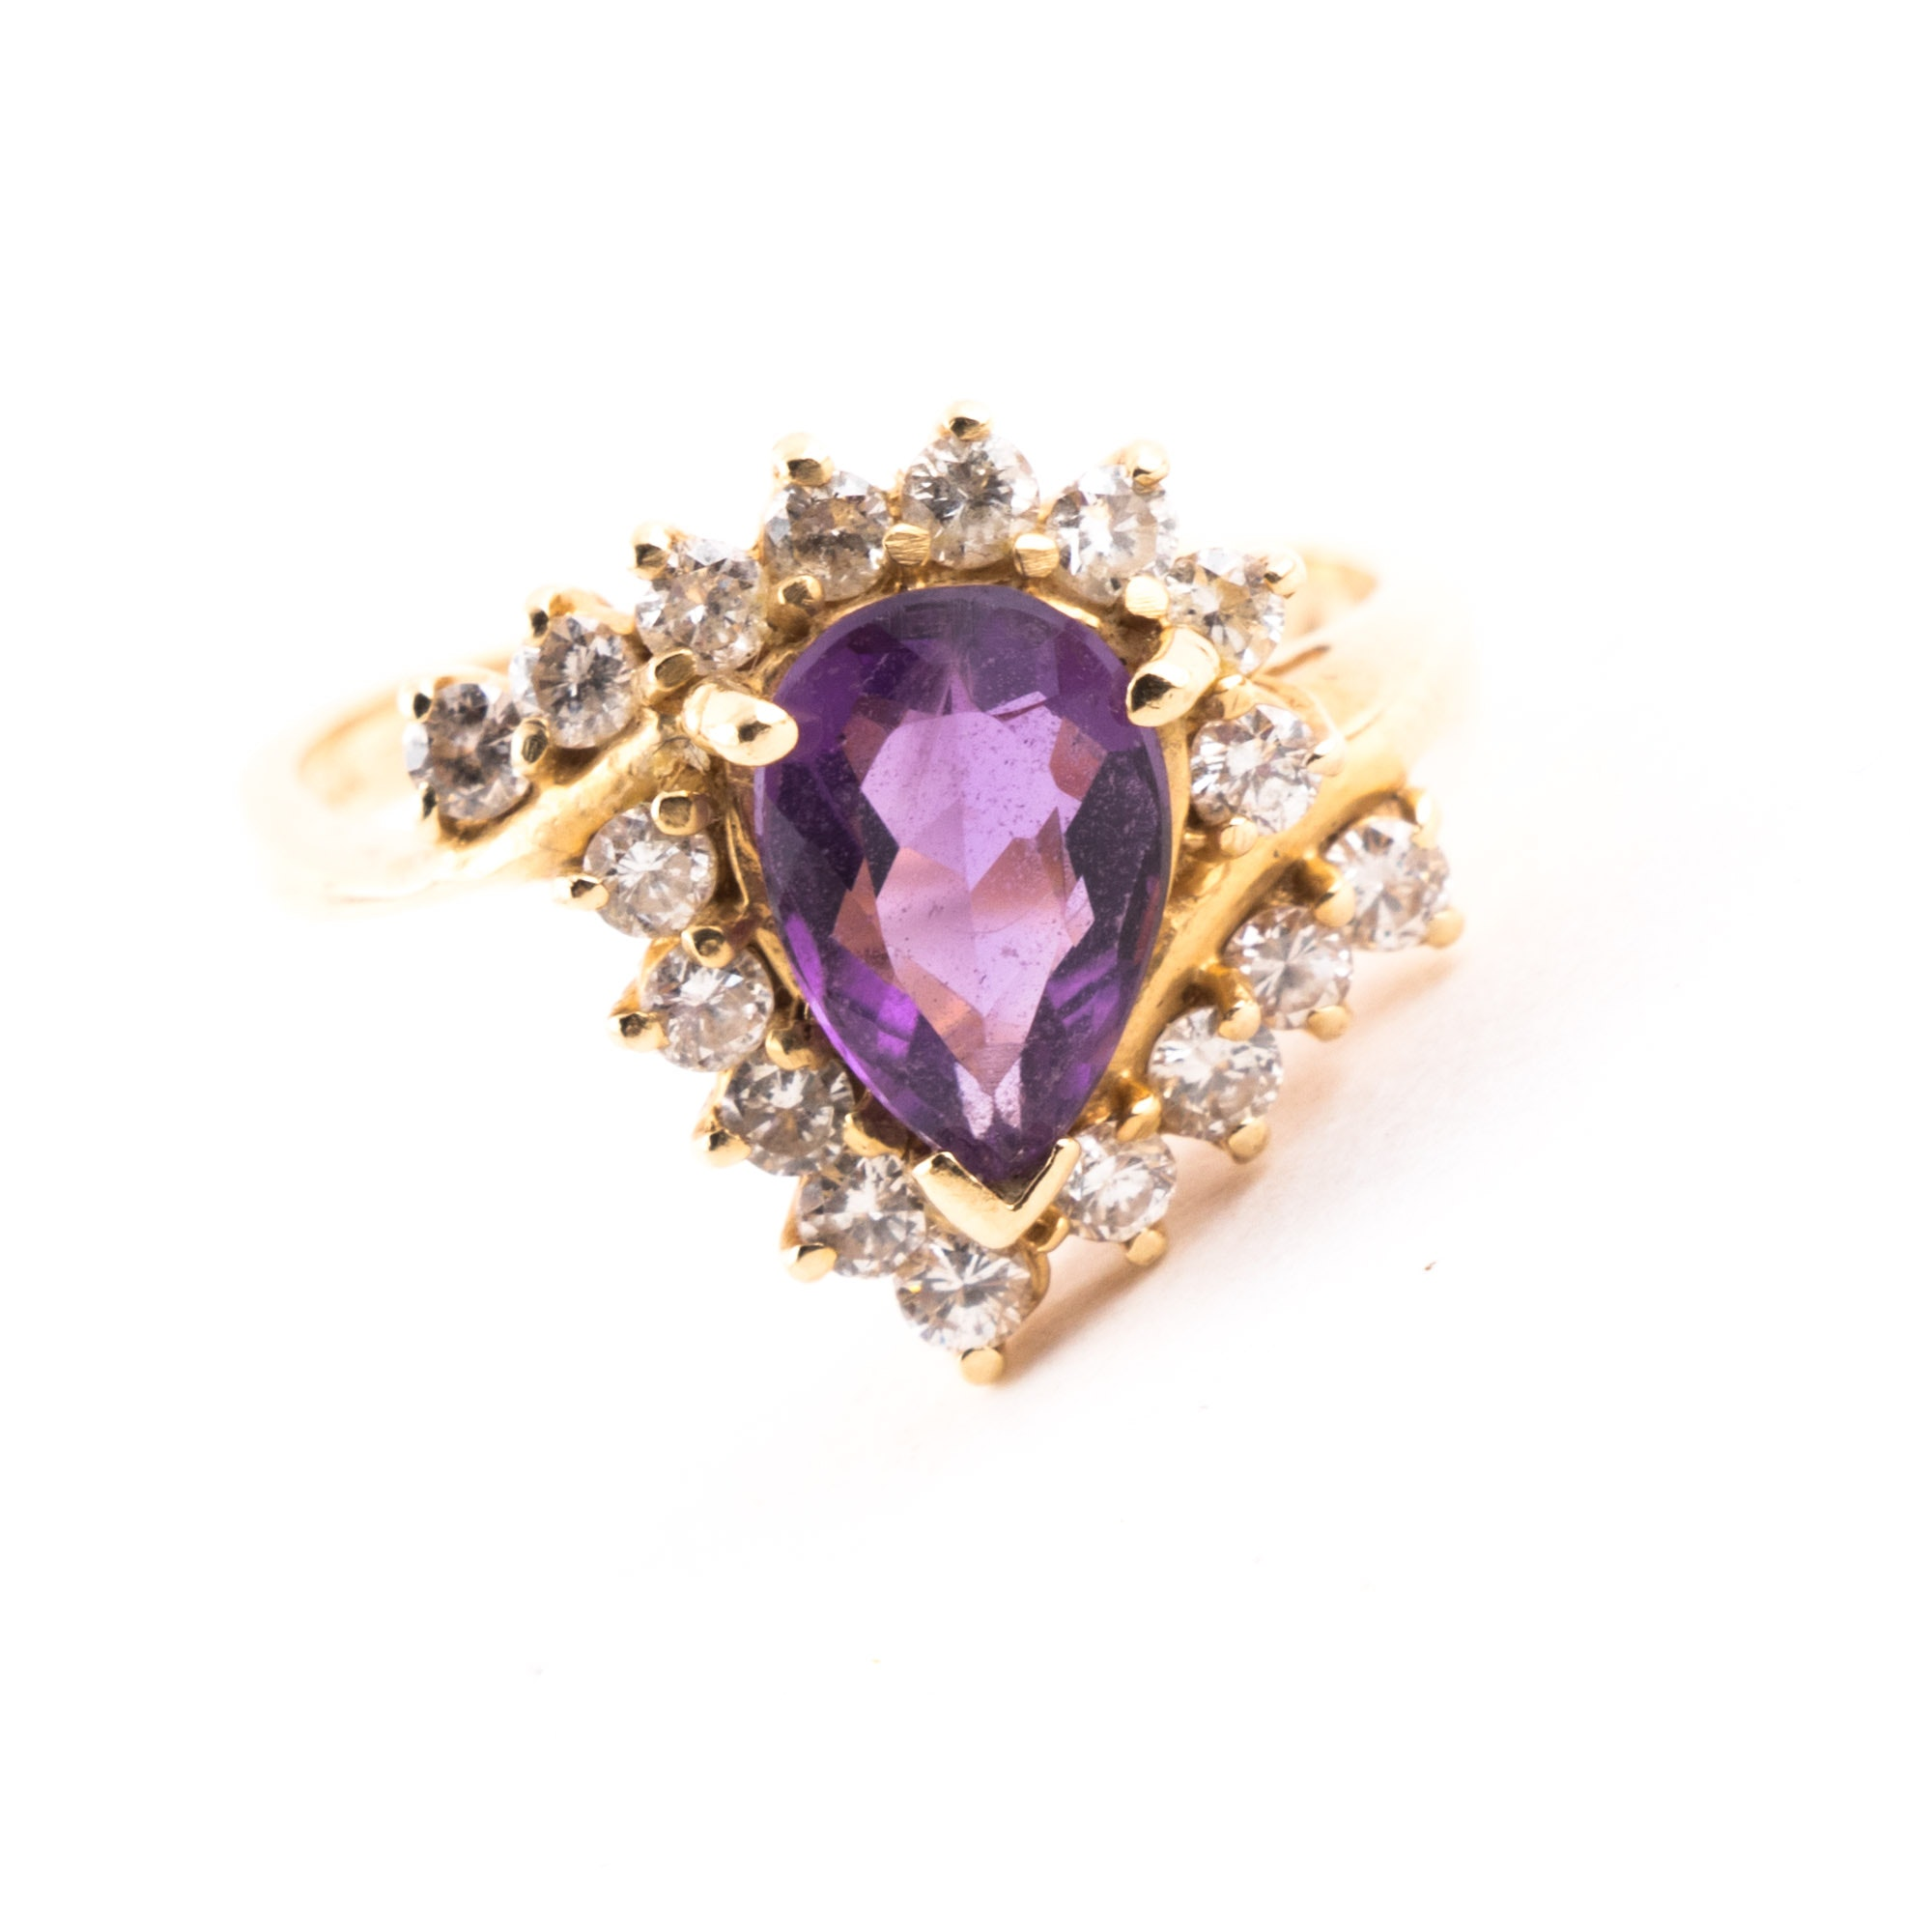 14K and 10K Yellow Gold, Amethyst, Diamond Ring